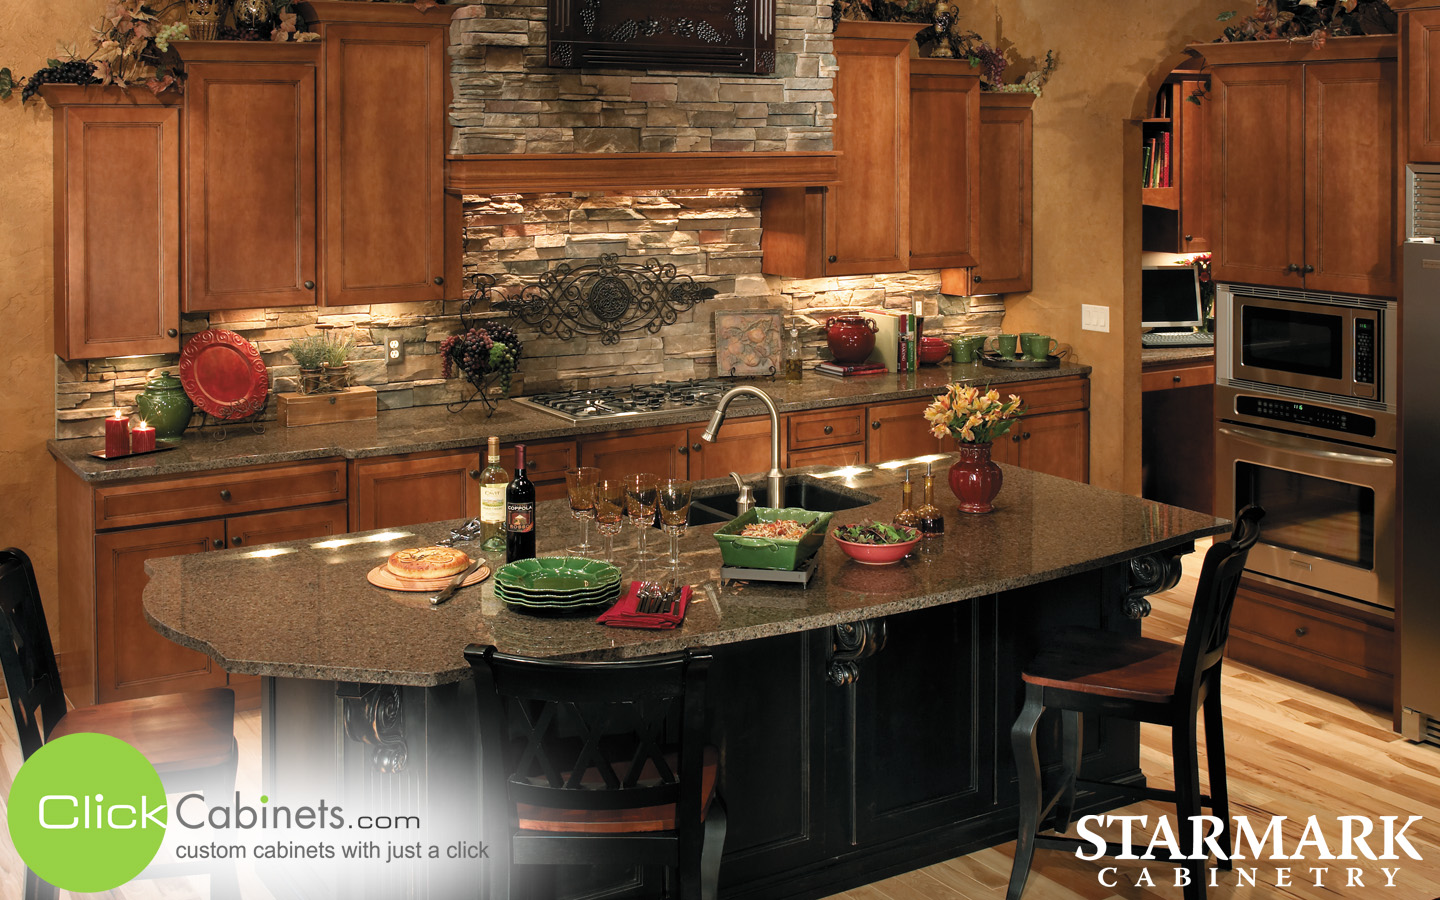 click cabinets 2000 certificate for kitchen cabinets lowe kitchen design ideas click details lowes cabinet